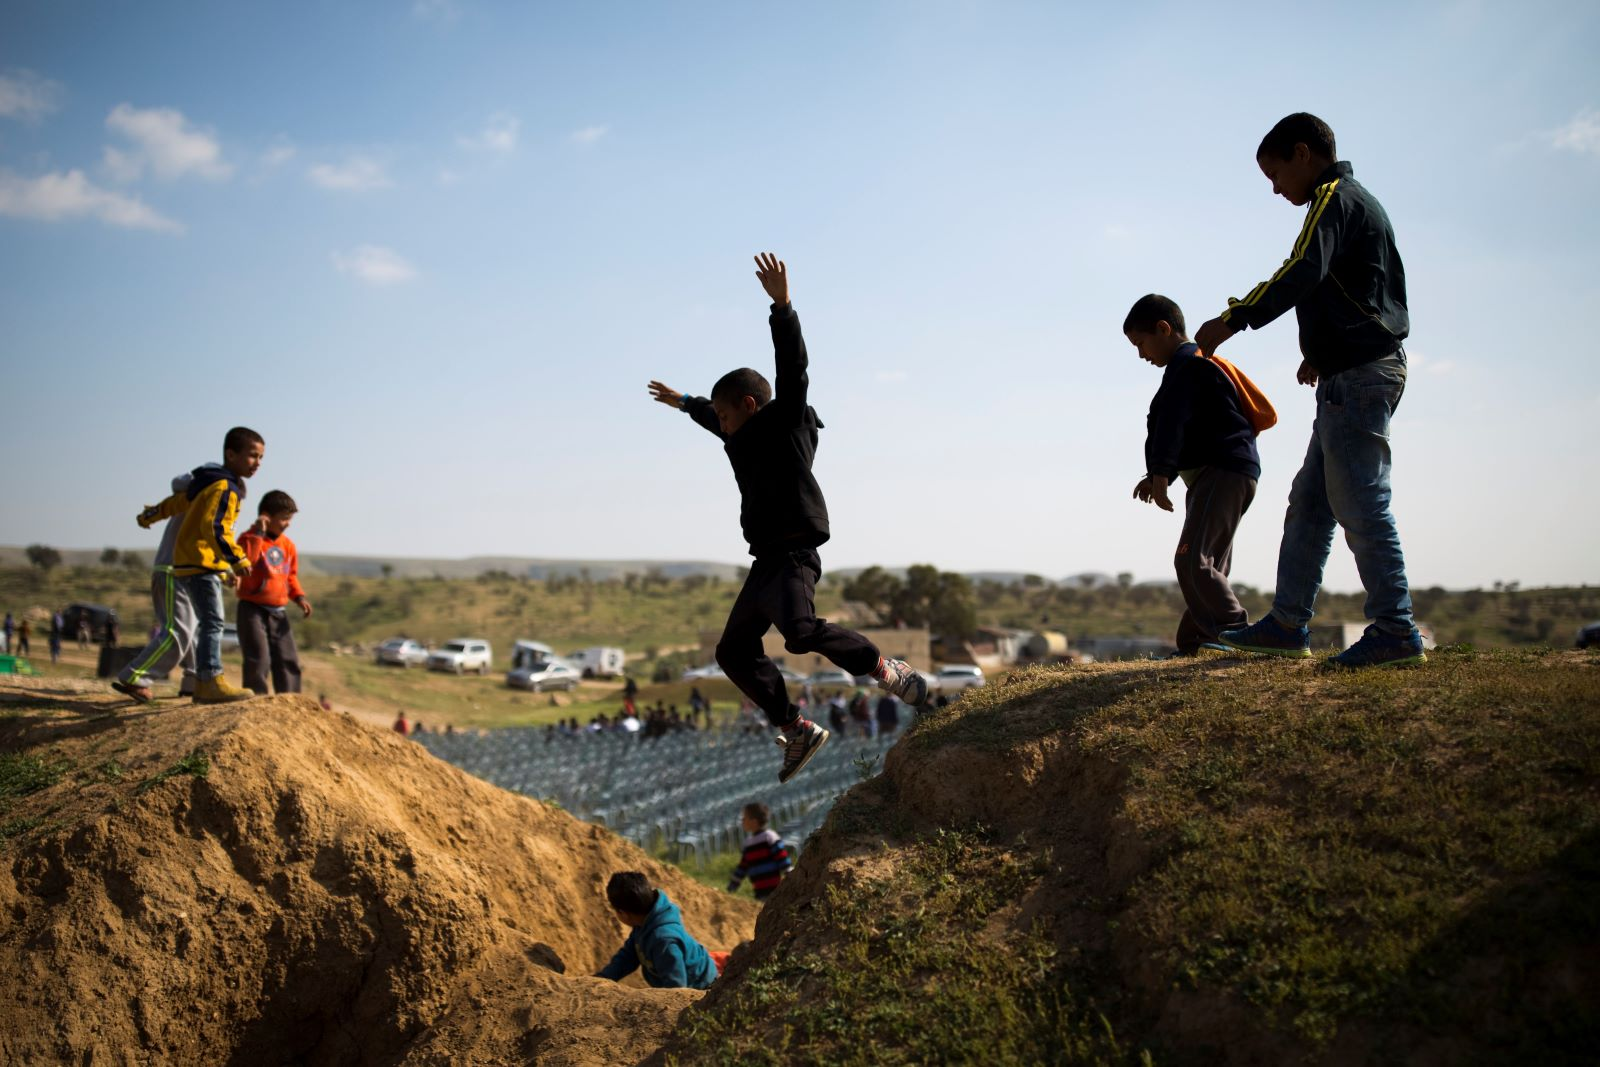 Arab Bedouin kids play near a protest marking the 40th anniversary of Land Day, in Umm Al-Hiran, southern Israel, March 30, 2016. (Corinna Kern/Flash90)